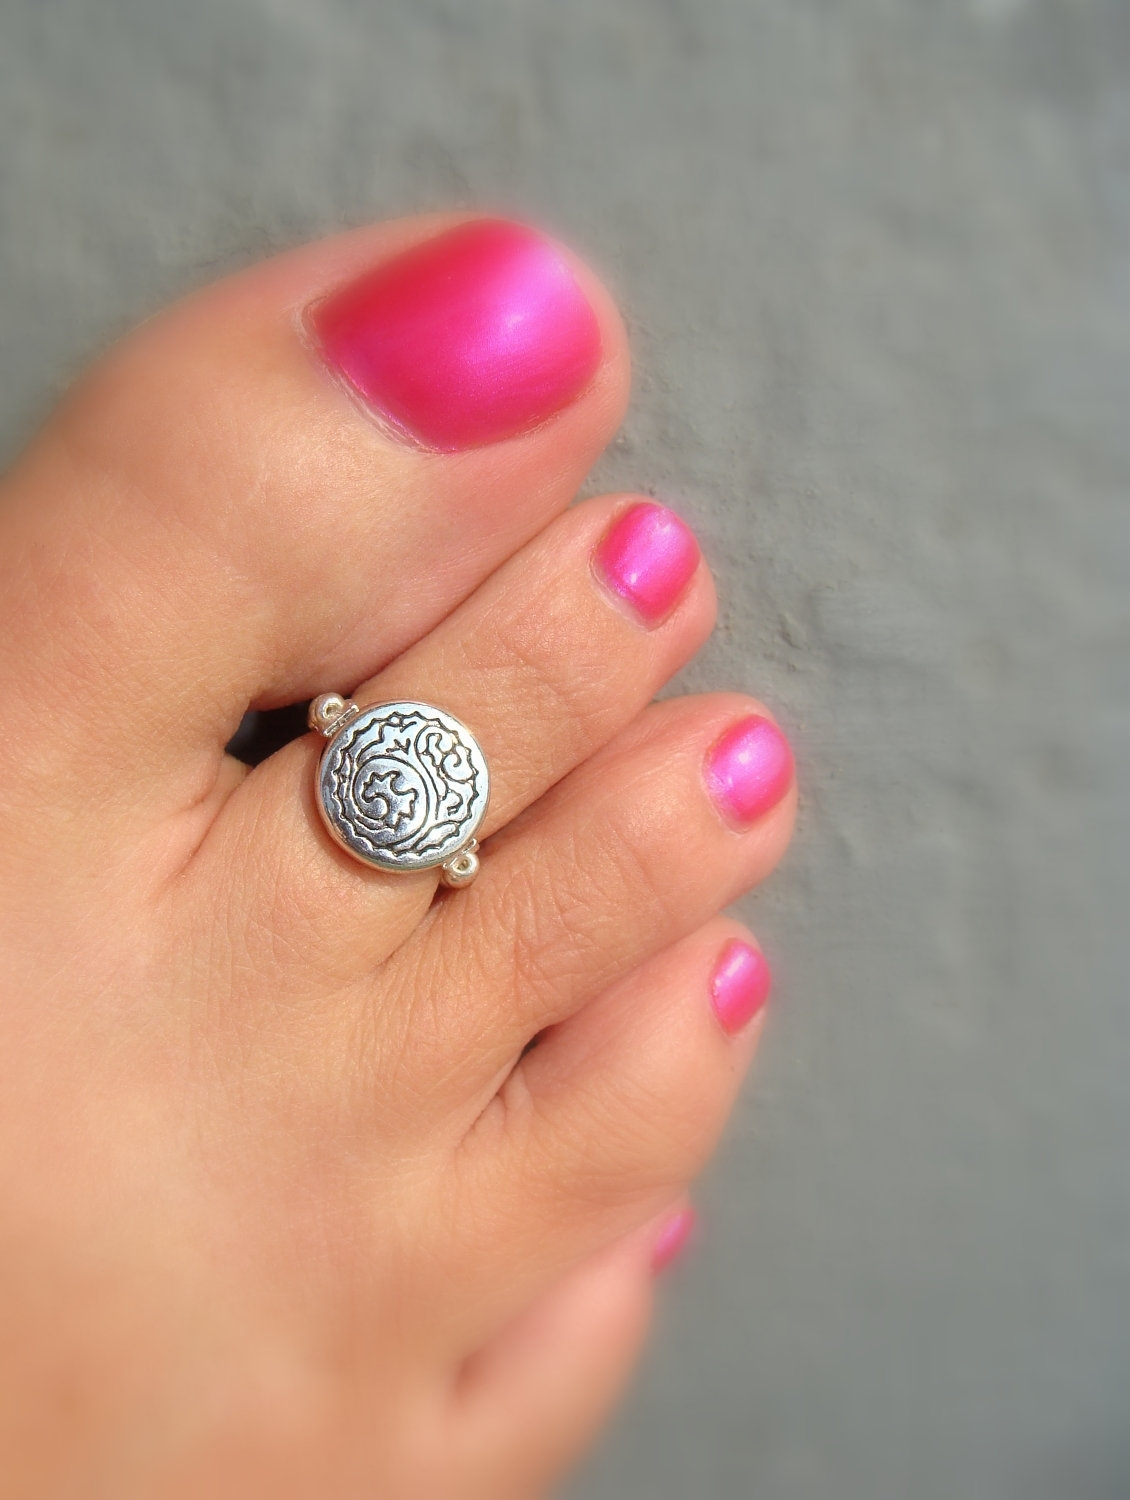 Toe Ring – Silver Wind Wave Coin Stretch Bead Toe Ring | Toe Rings Within 2018 Chevron Toe Rings (Gallery 4 of 15)